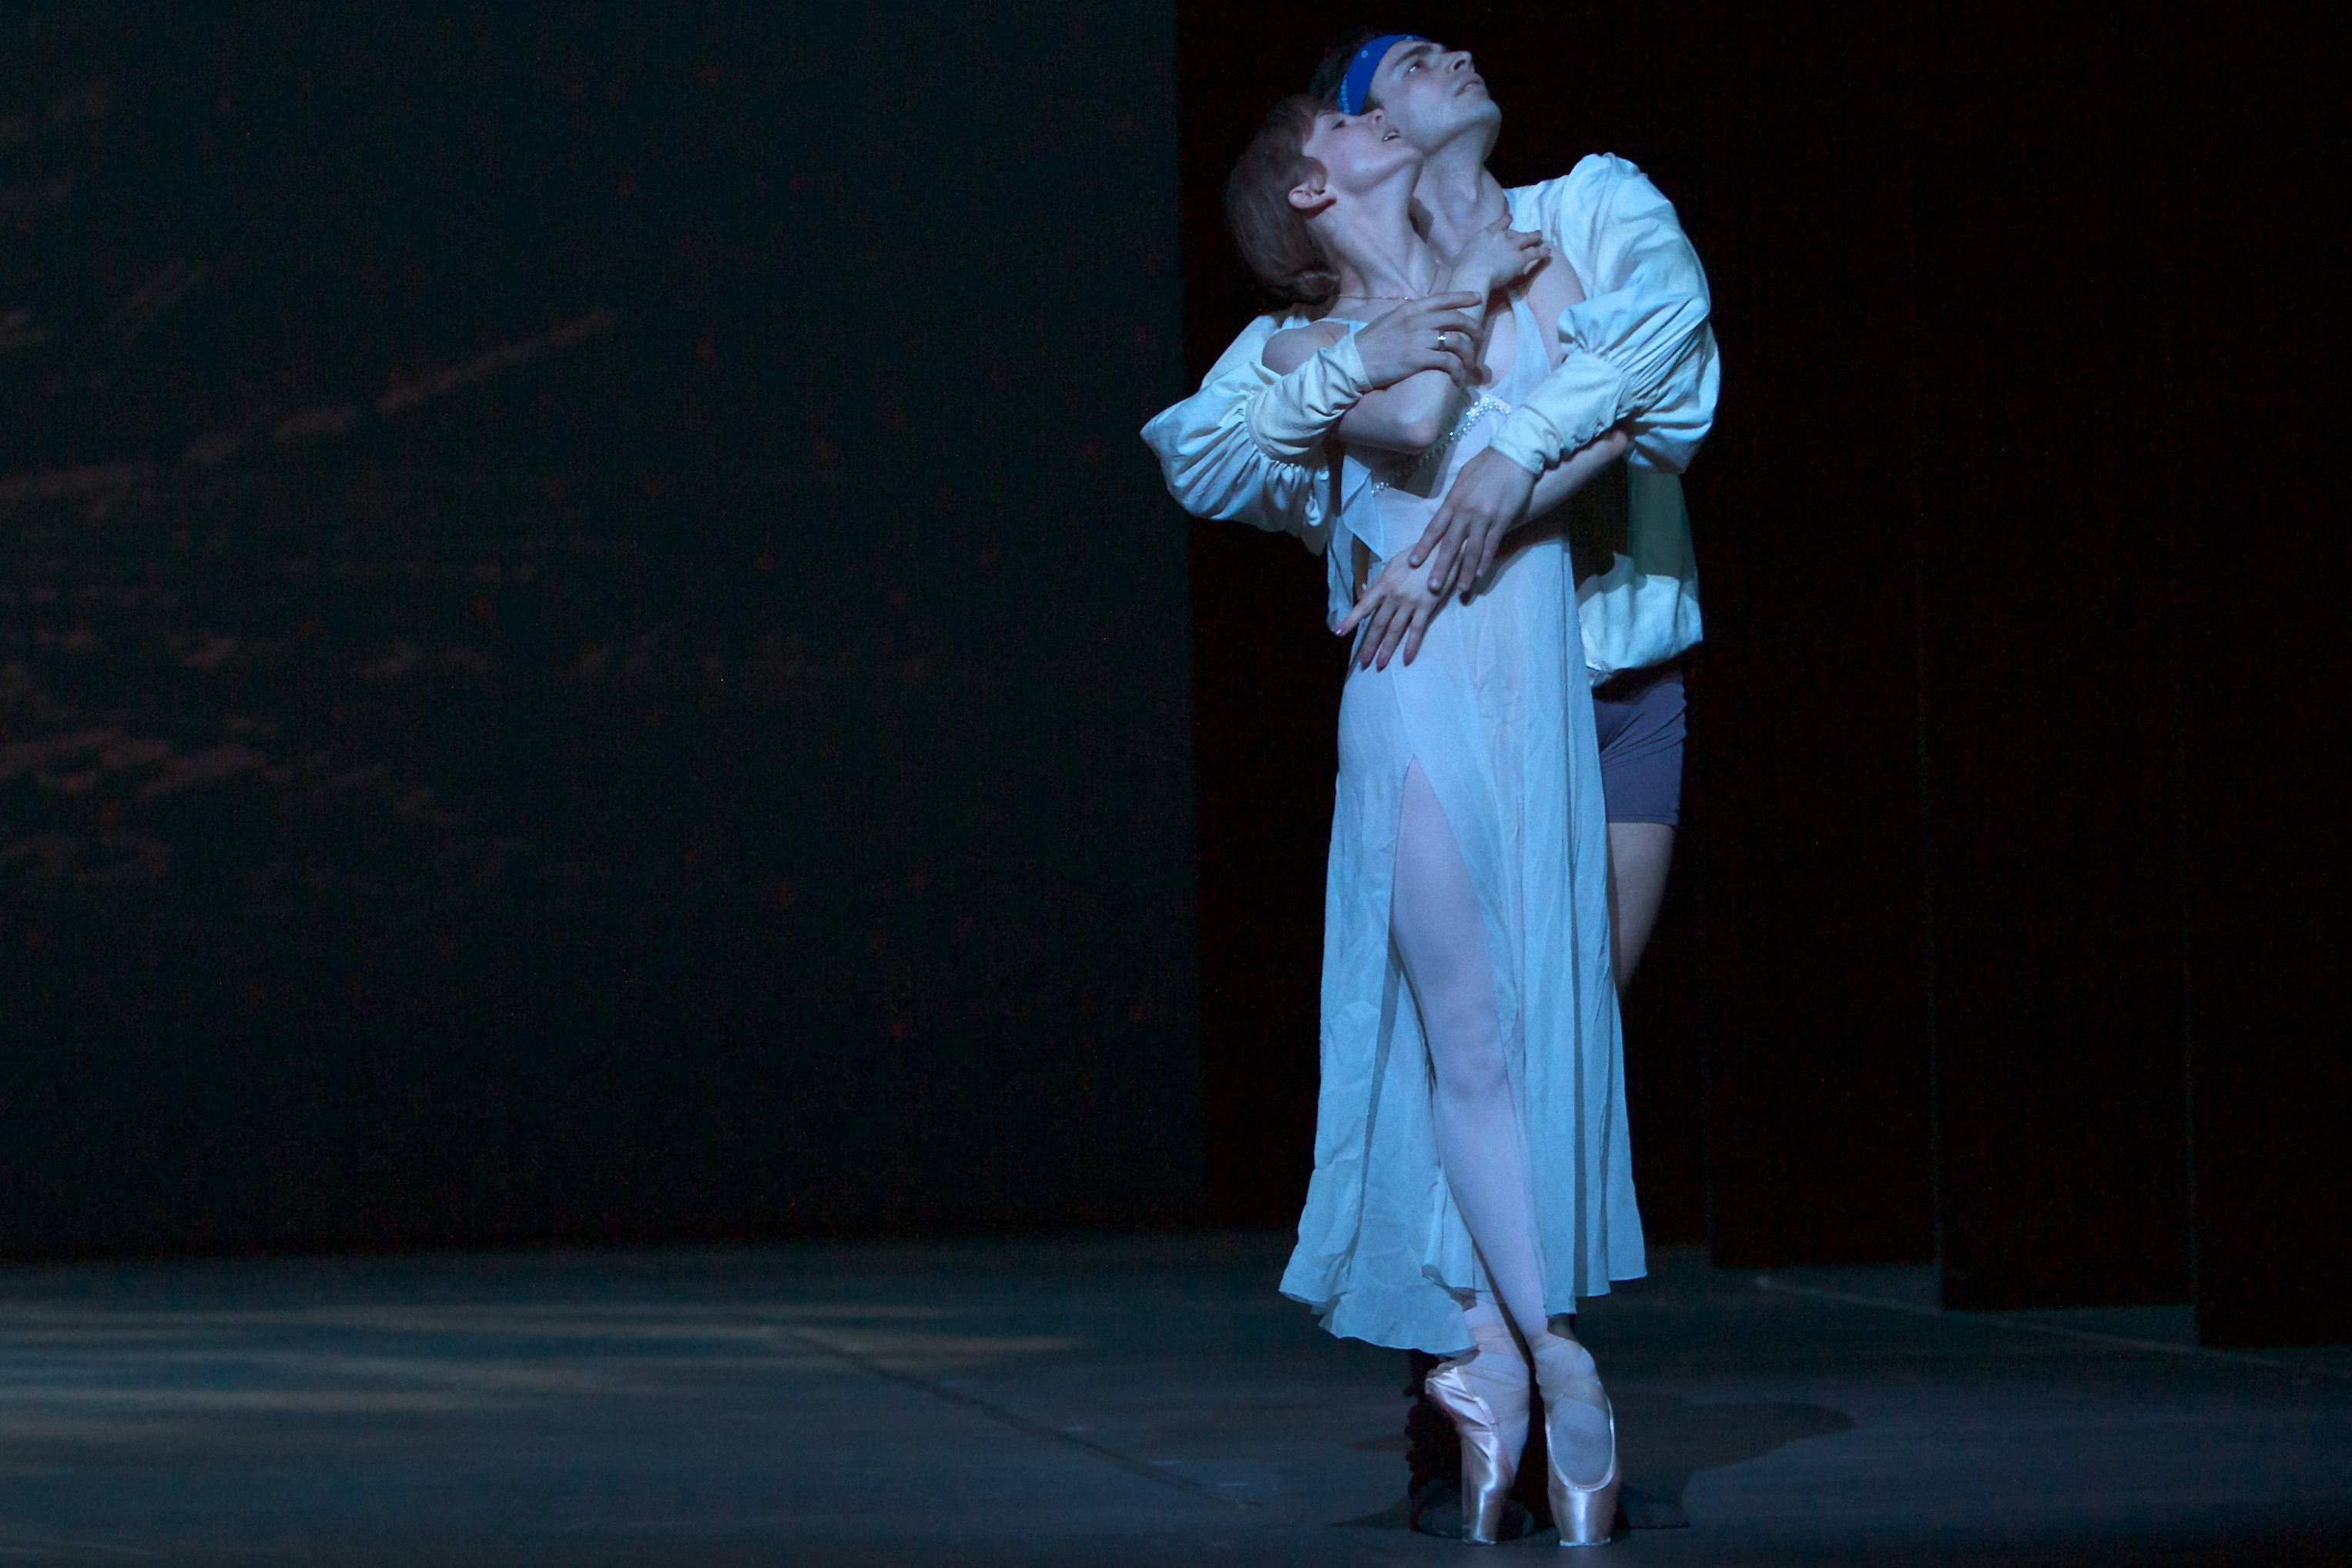 two ballet dancers on stage holding each other